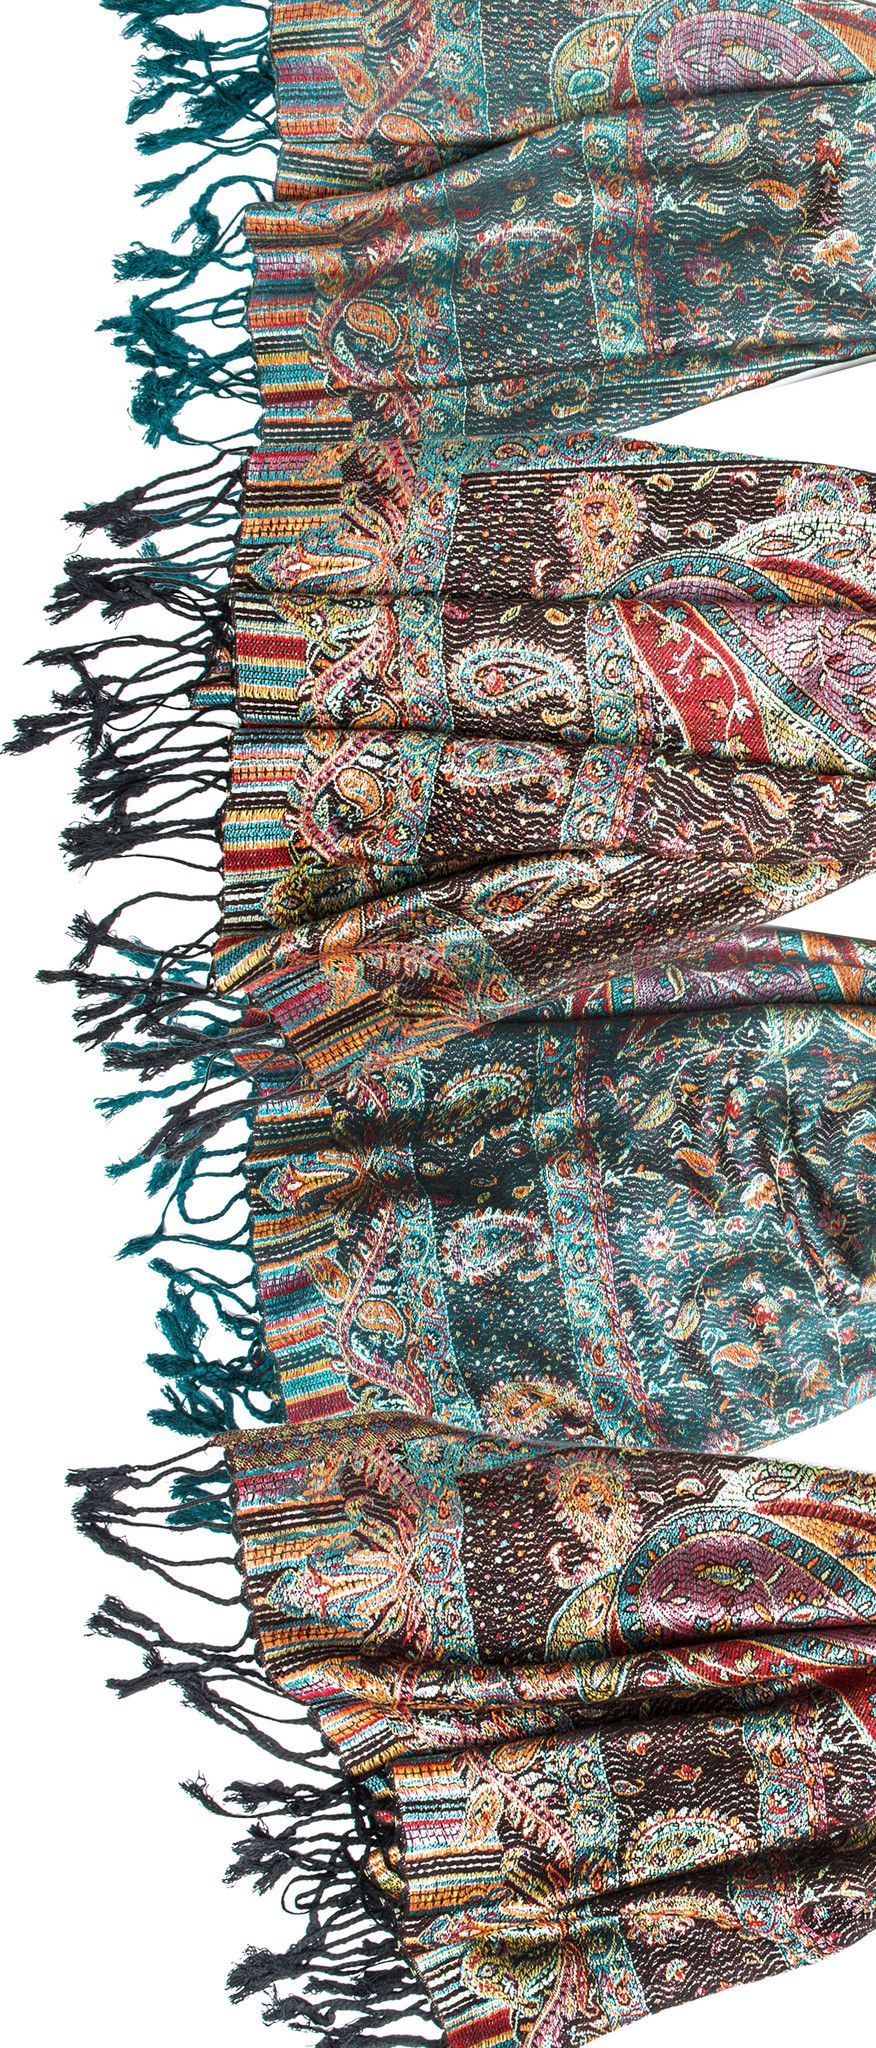 6c60f0966 Scarves - Tiaja Scarf, Pashmina Indian Paisley Traditional Jacquard Scarf - hand  made in India -() Bohomonde - 5